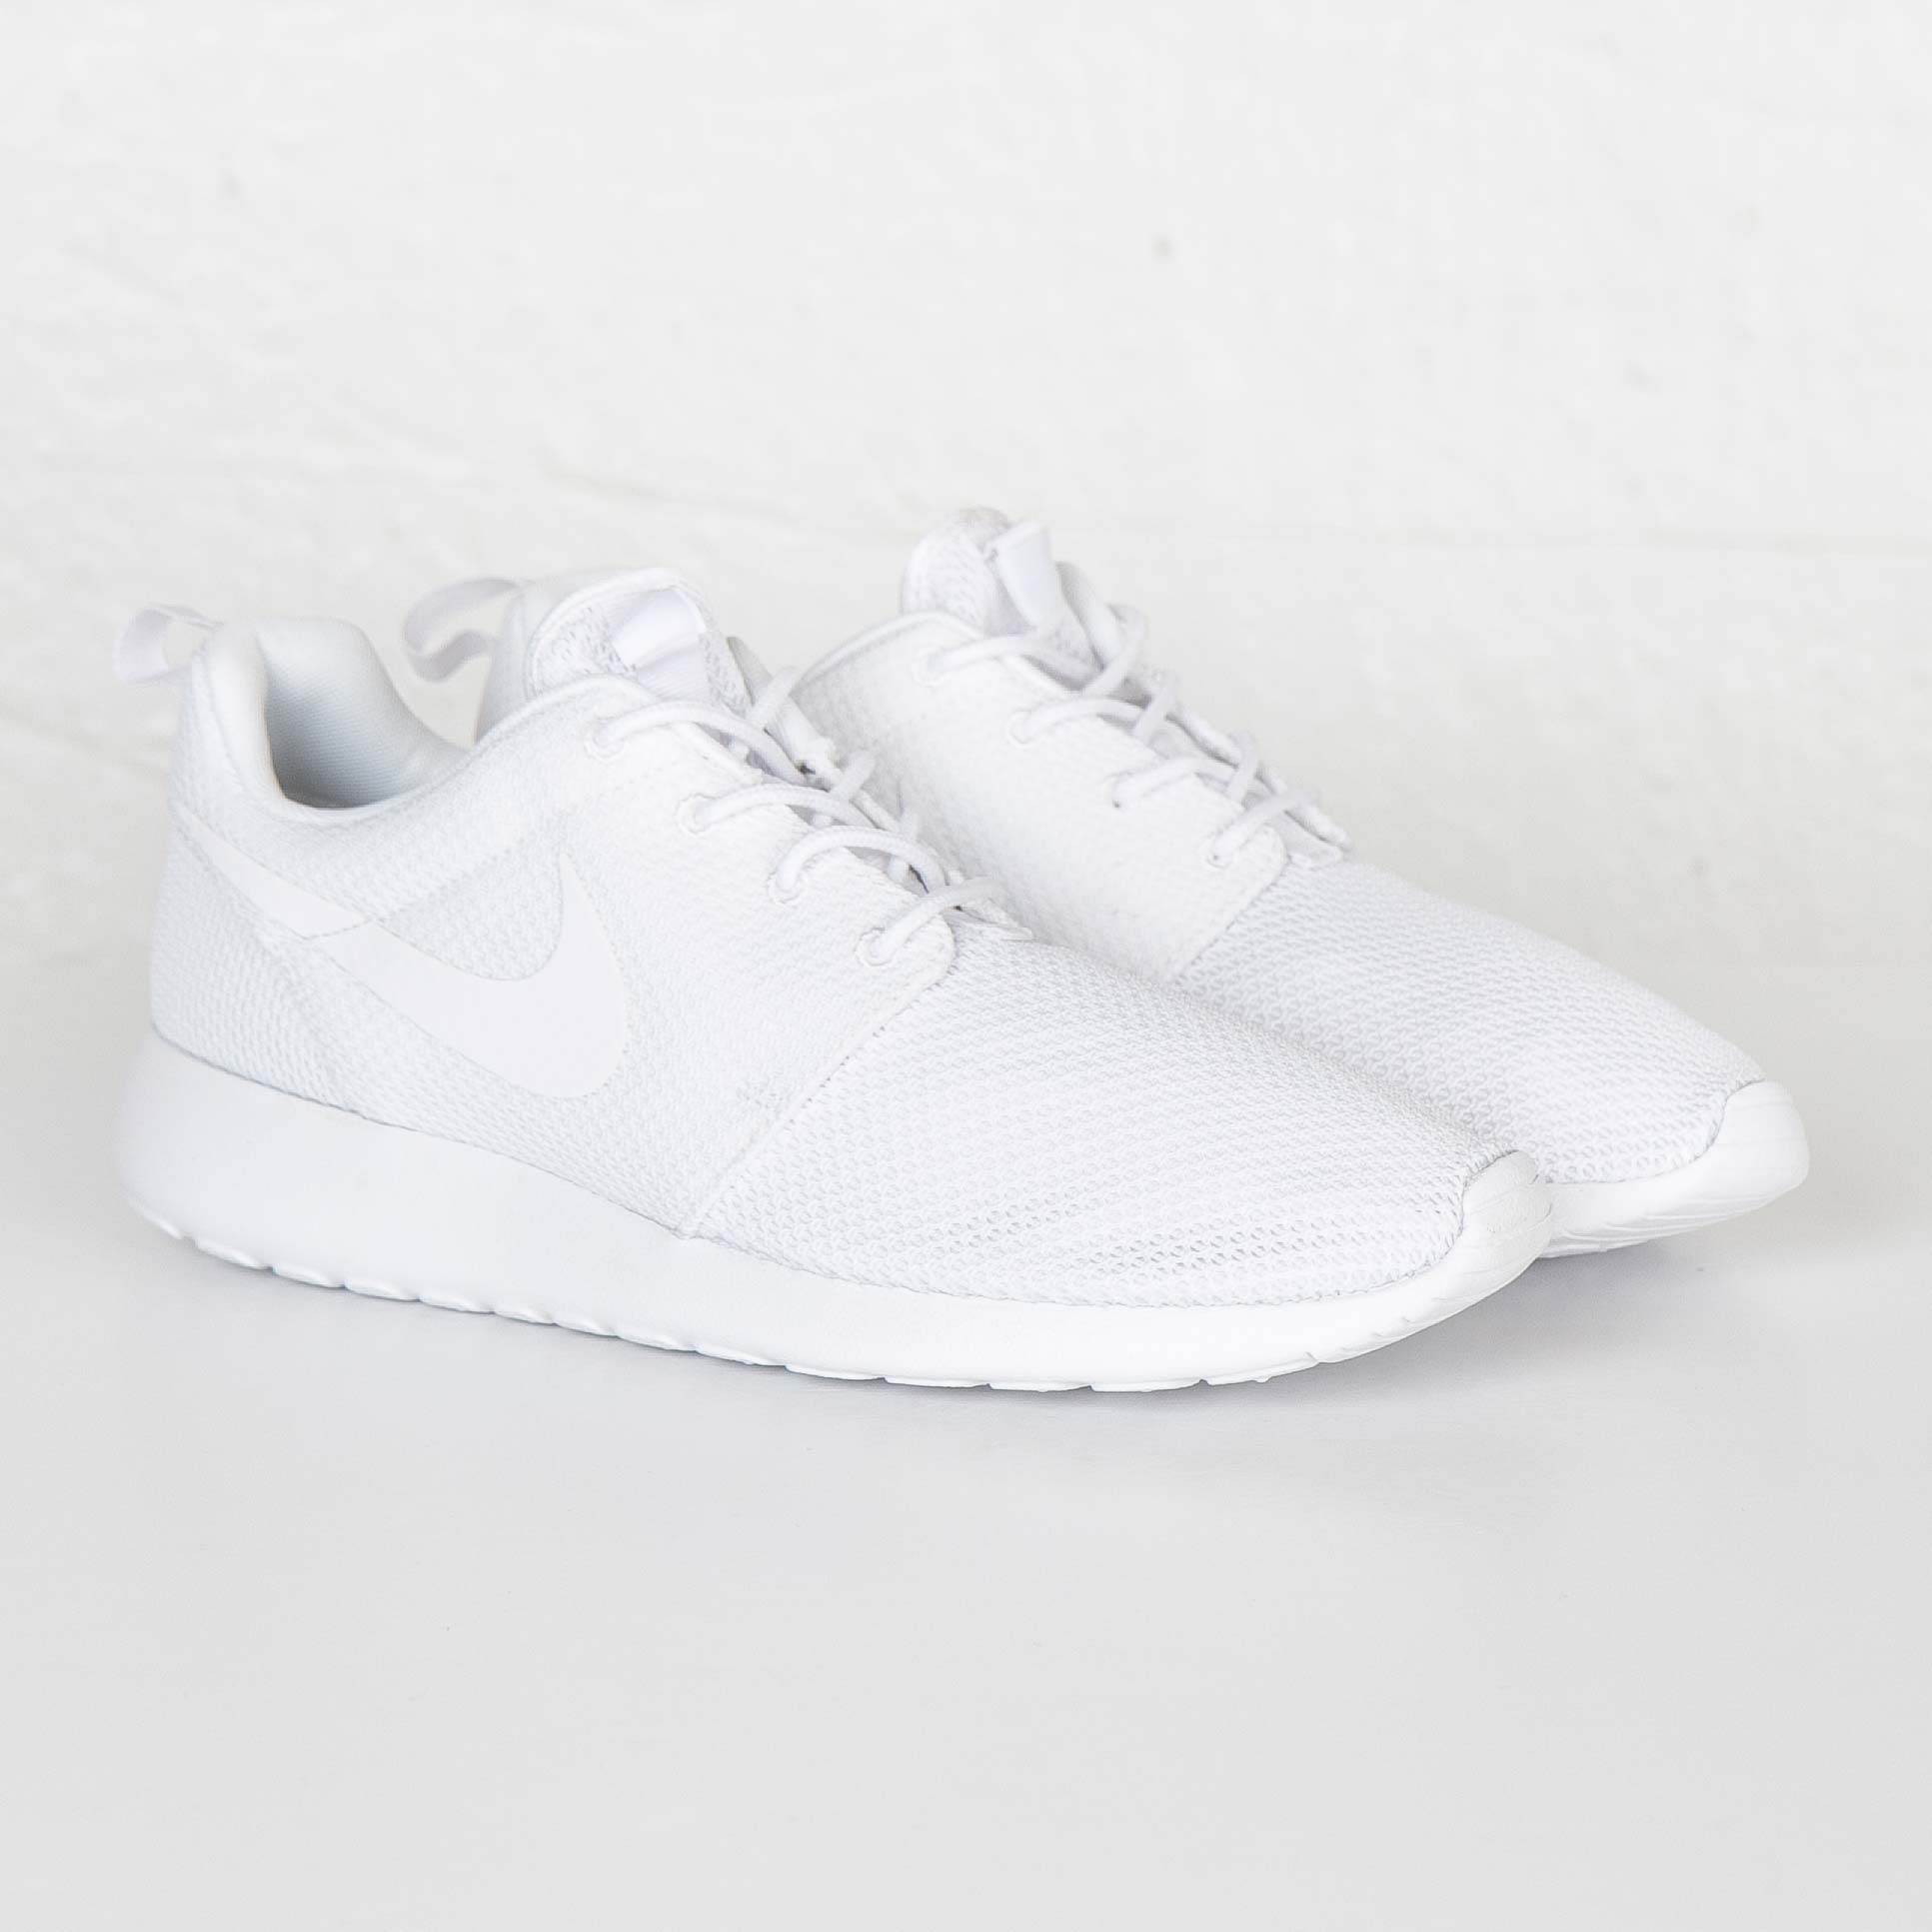 the best attitude 488db 4eebc Nike Roshe One - 511881-112 - Sneakersnstuff | sneakers ...